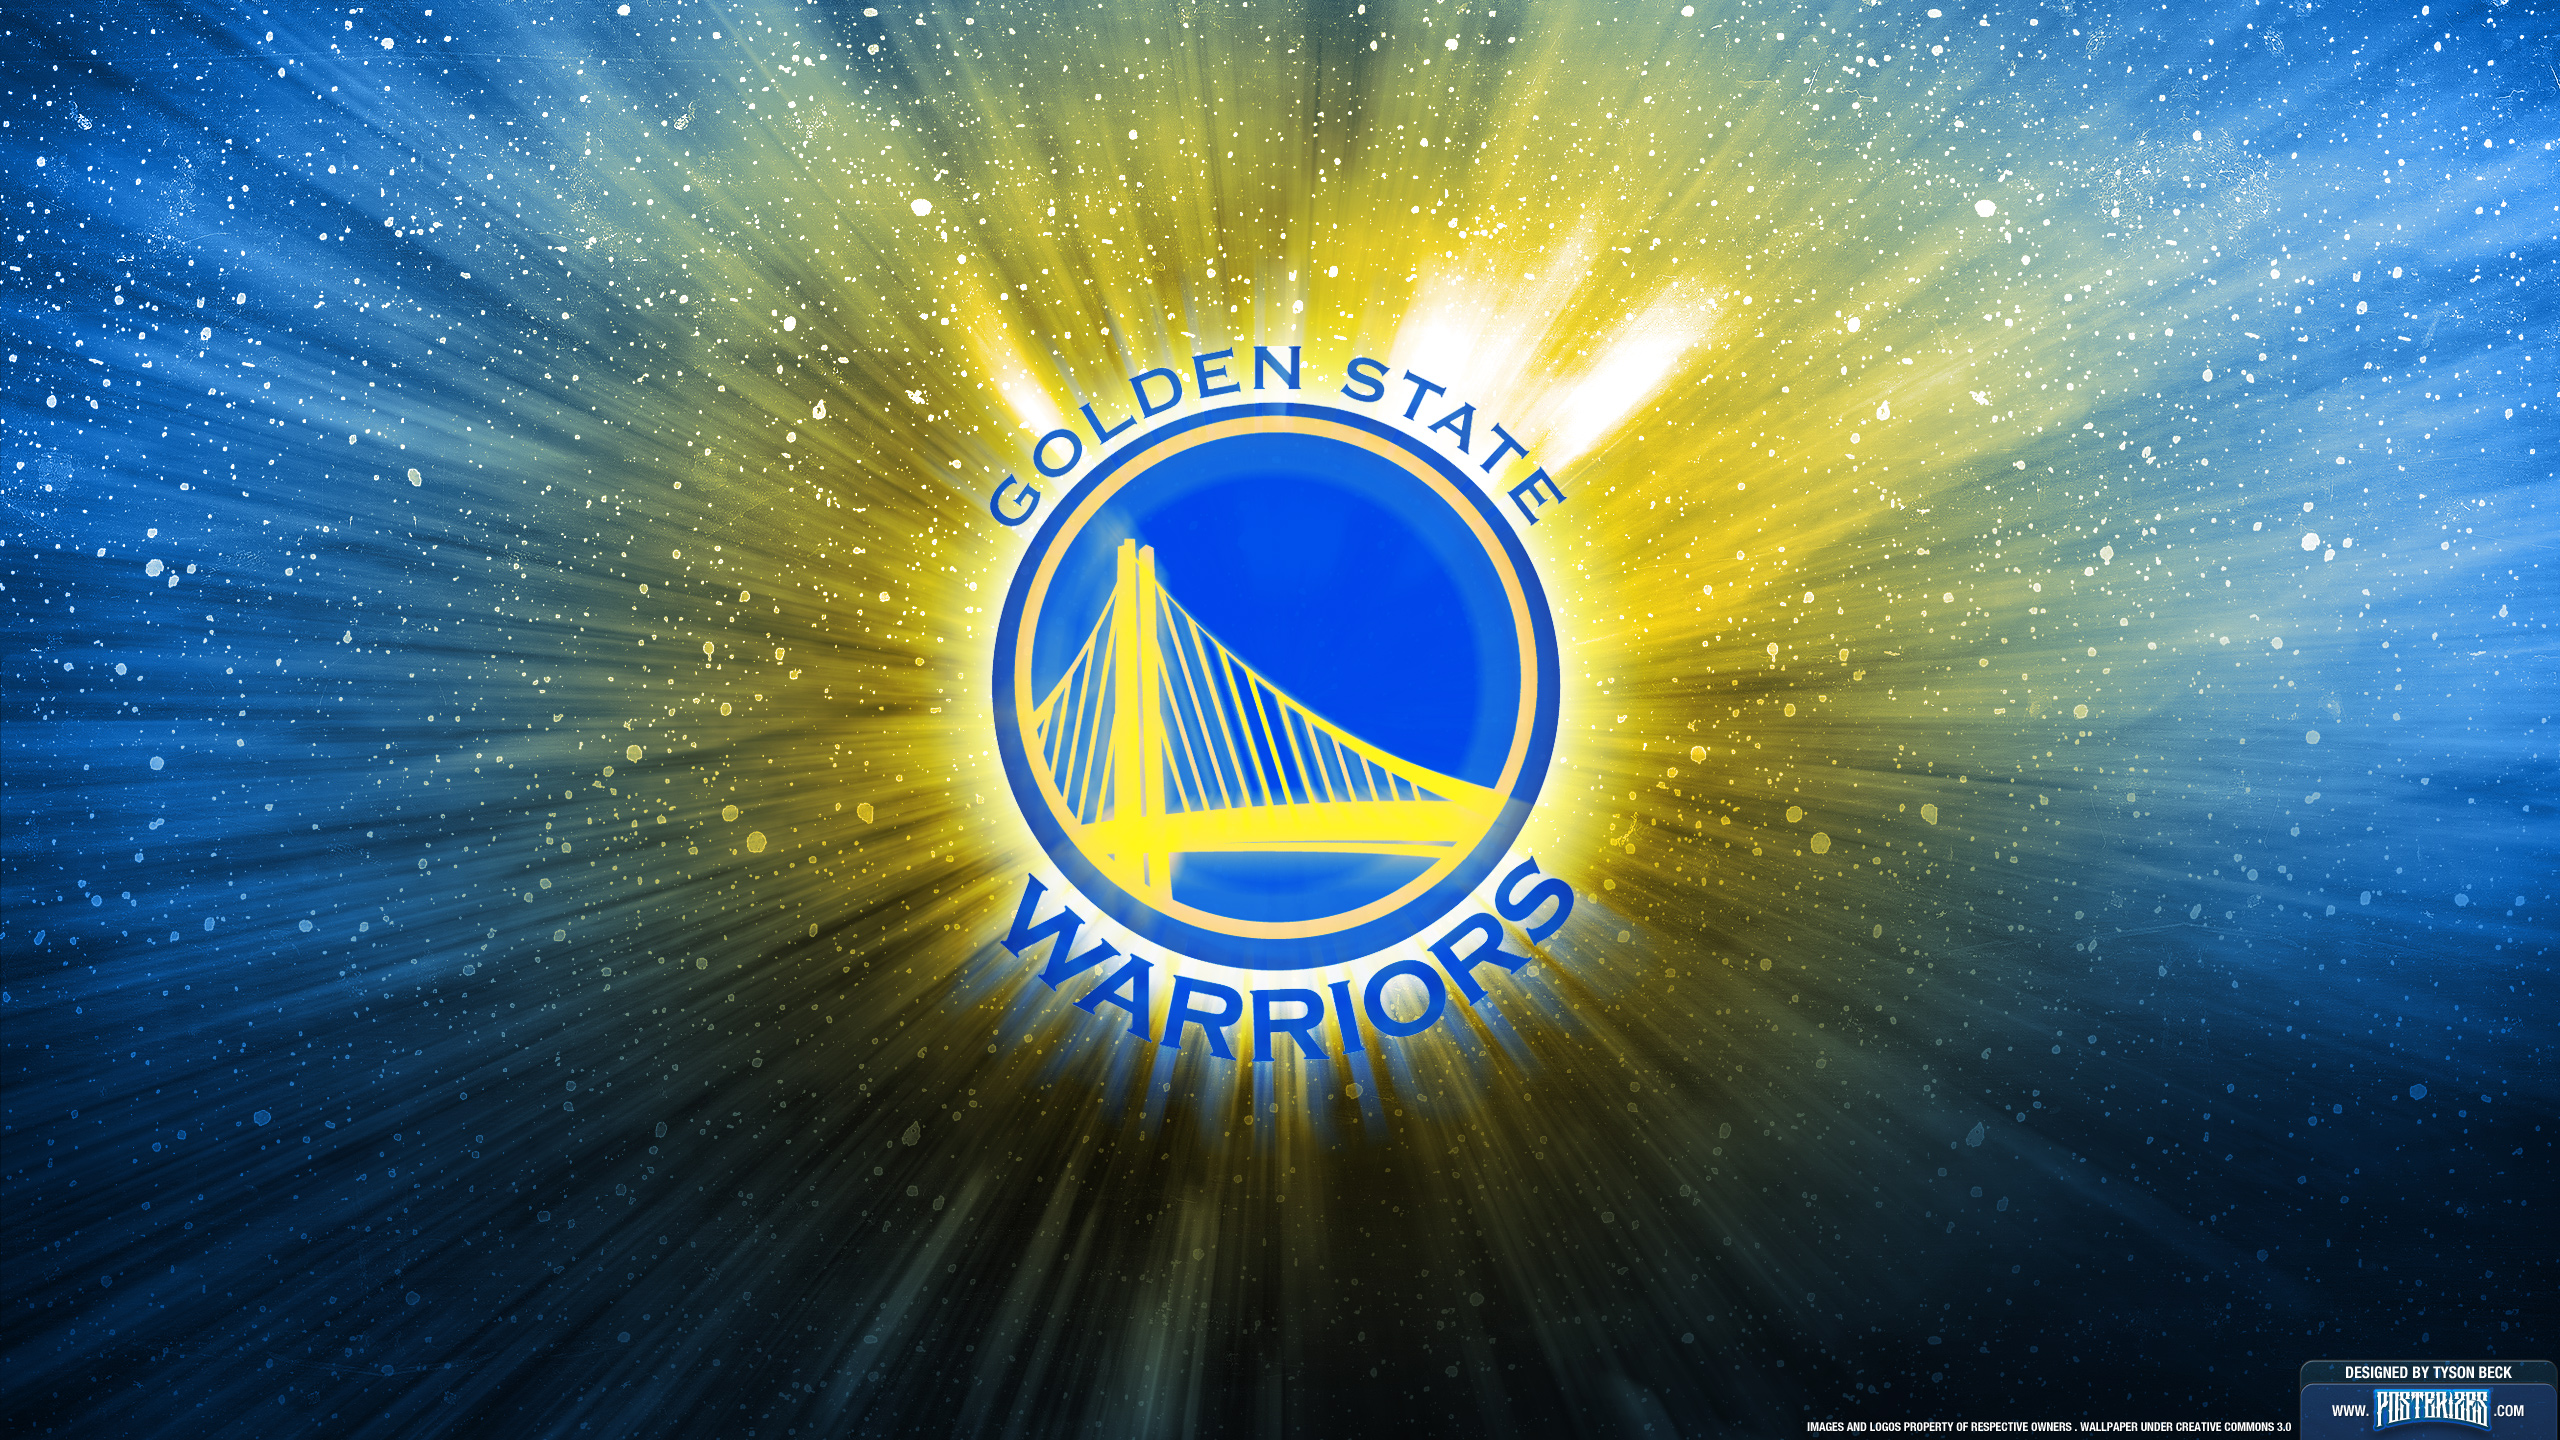 state golden warriors teams wallpaper logo 2560x1440